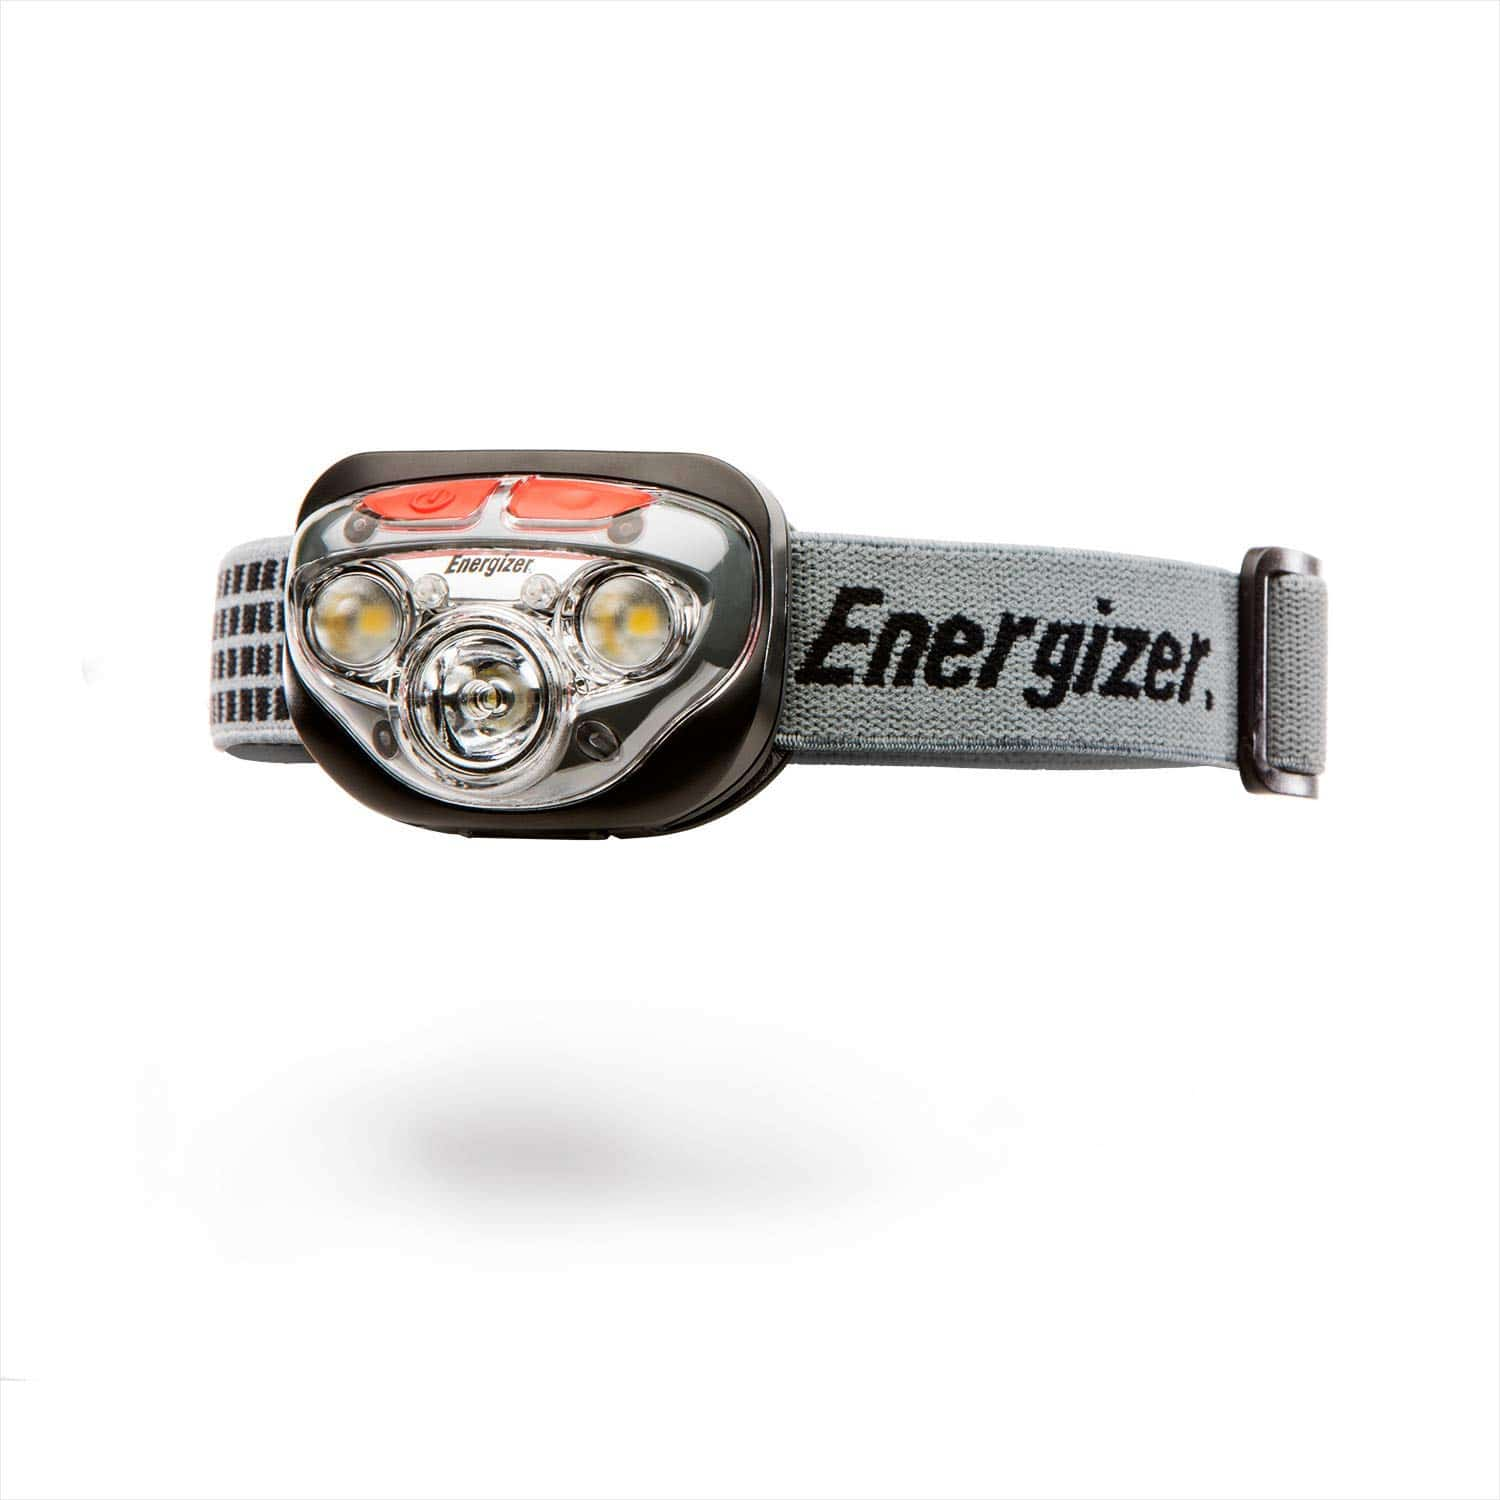 Vision HD+ Focus LED Headlamp